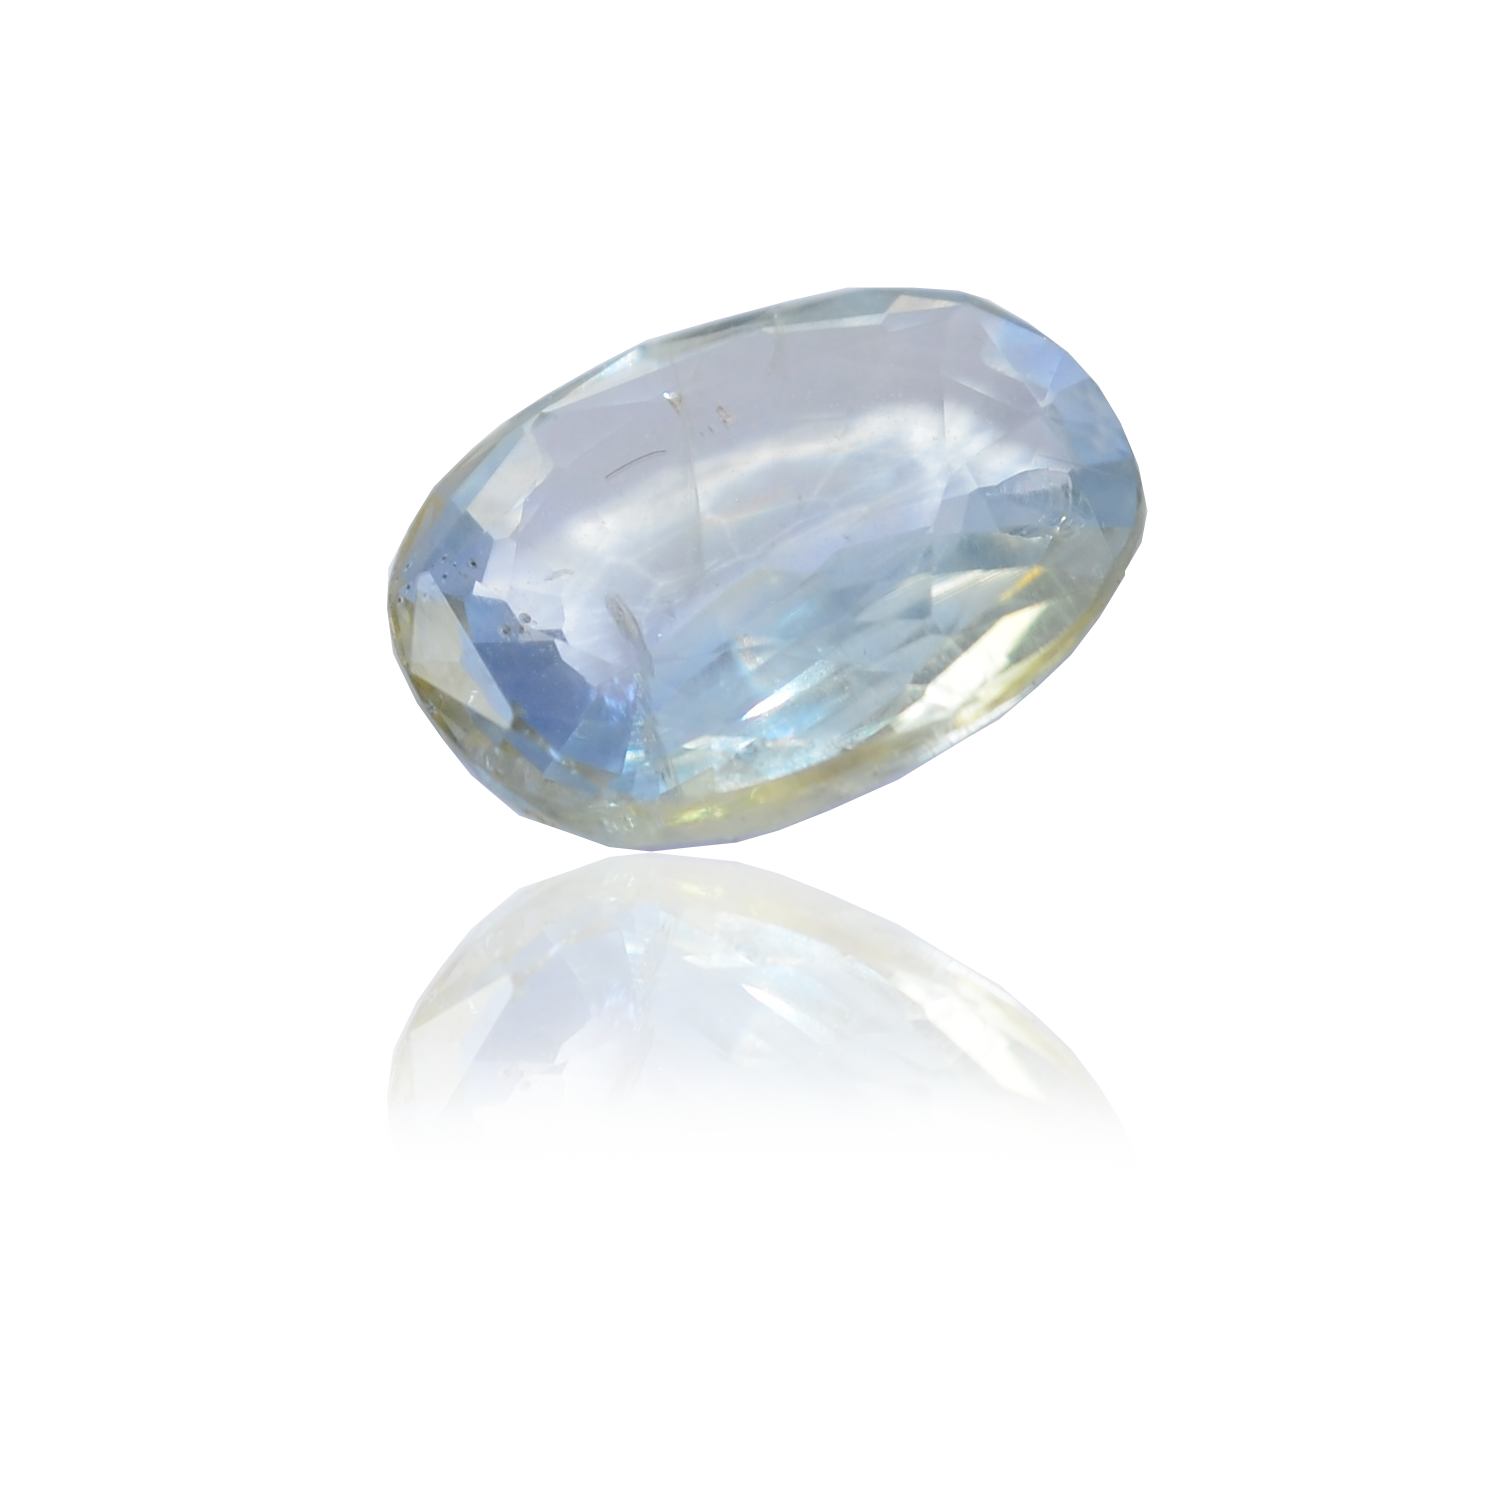 4.55 CARAT, OVAL MIXED CUT NATURAL BLUE SAPPHIRE